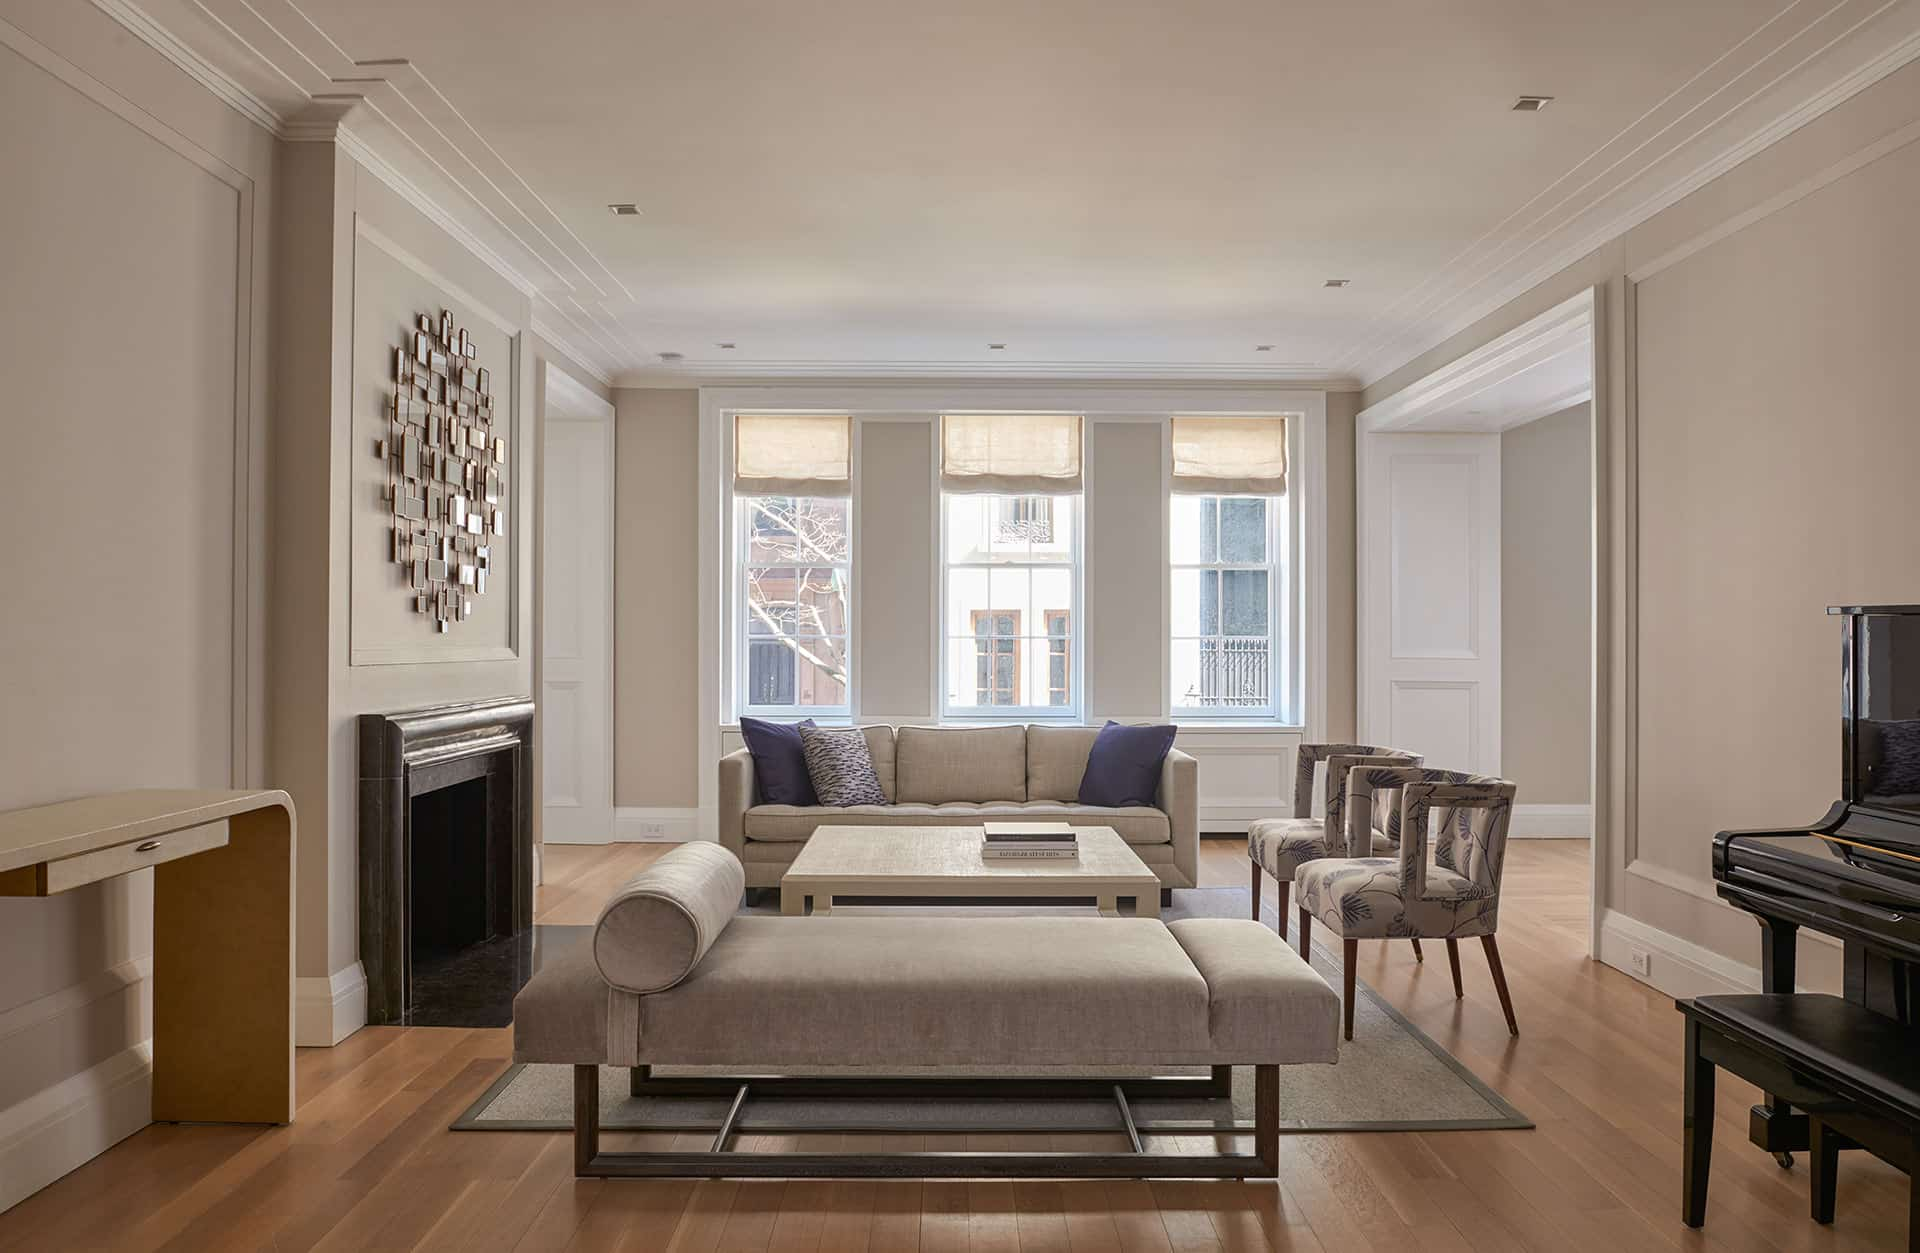 Park Avenue Apartment Living Room Architecture After Renovation | Rodman Paul Architects